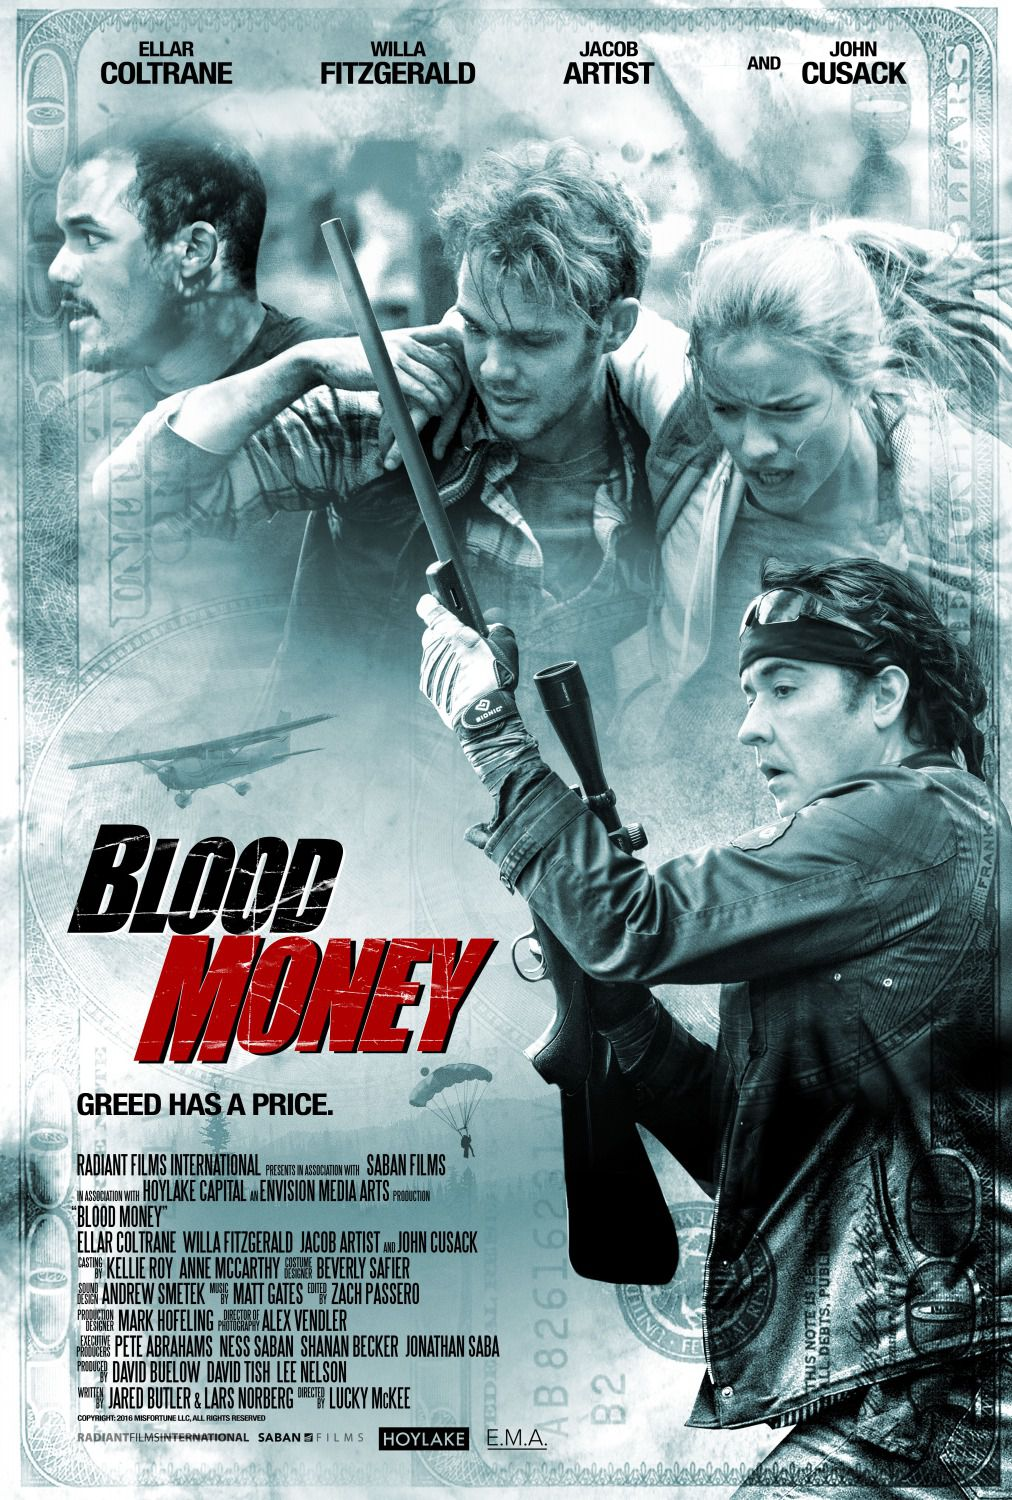 Blood Money - Soldi Sporchi - Ellar Coltrane, John Cusack, Ellar Coltrane, Willa Fitzgerald, Jacob Artist